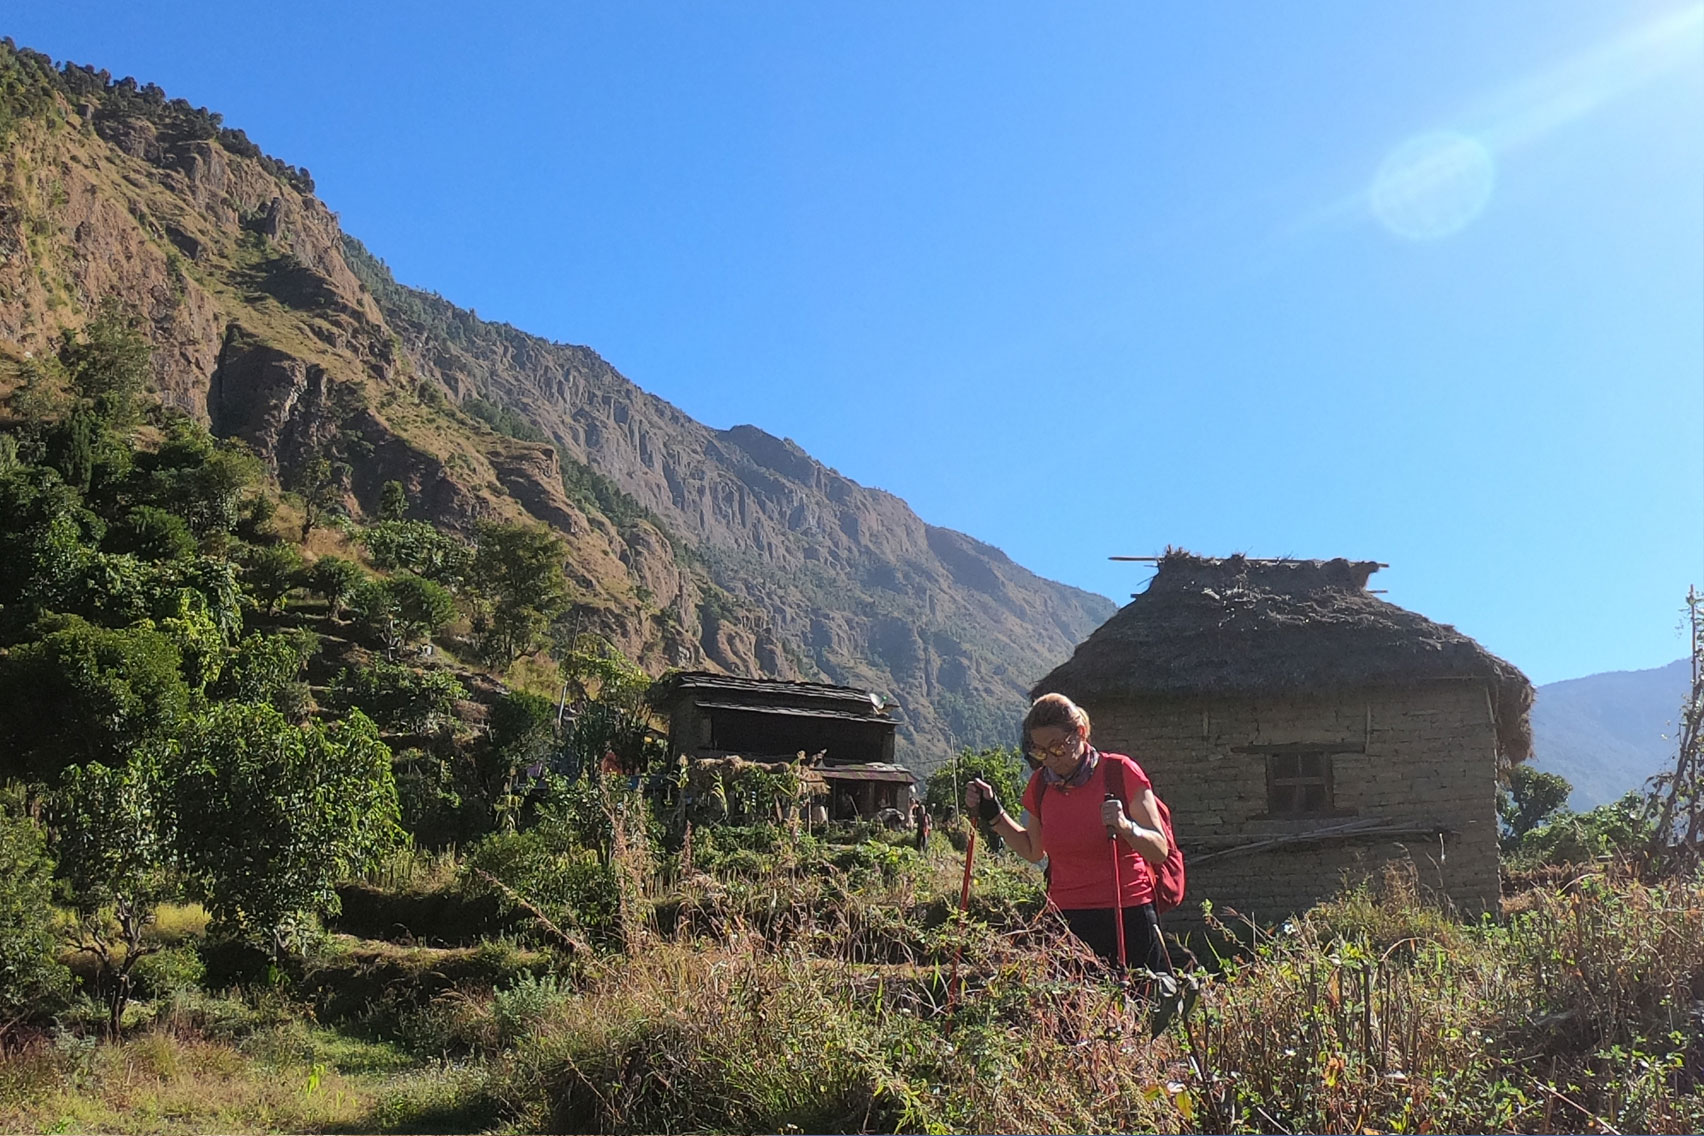 Day 7: Trek from Tikot (2250m) to Baisari (3hrs, 1100m) and drive to Pokhara (4hrs)